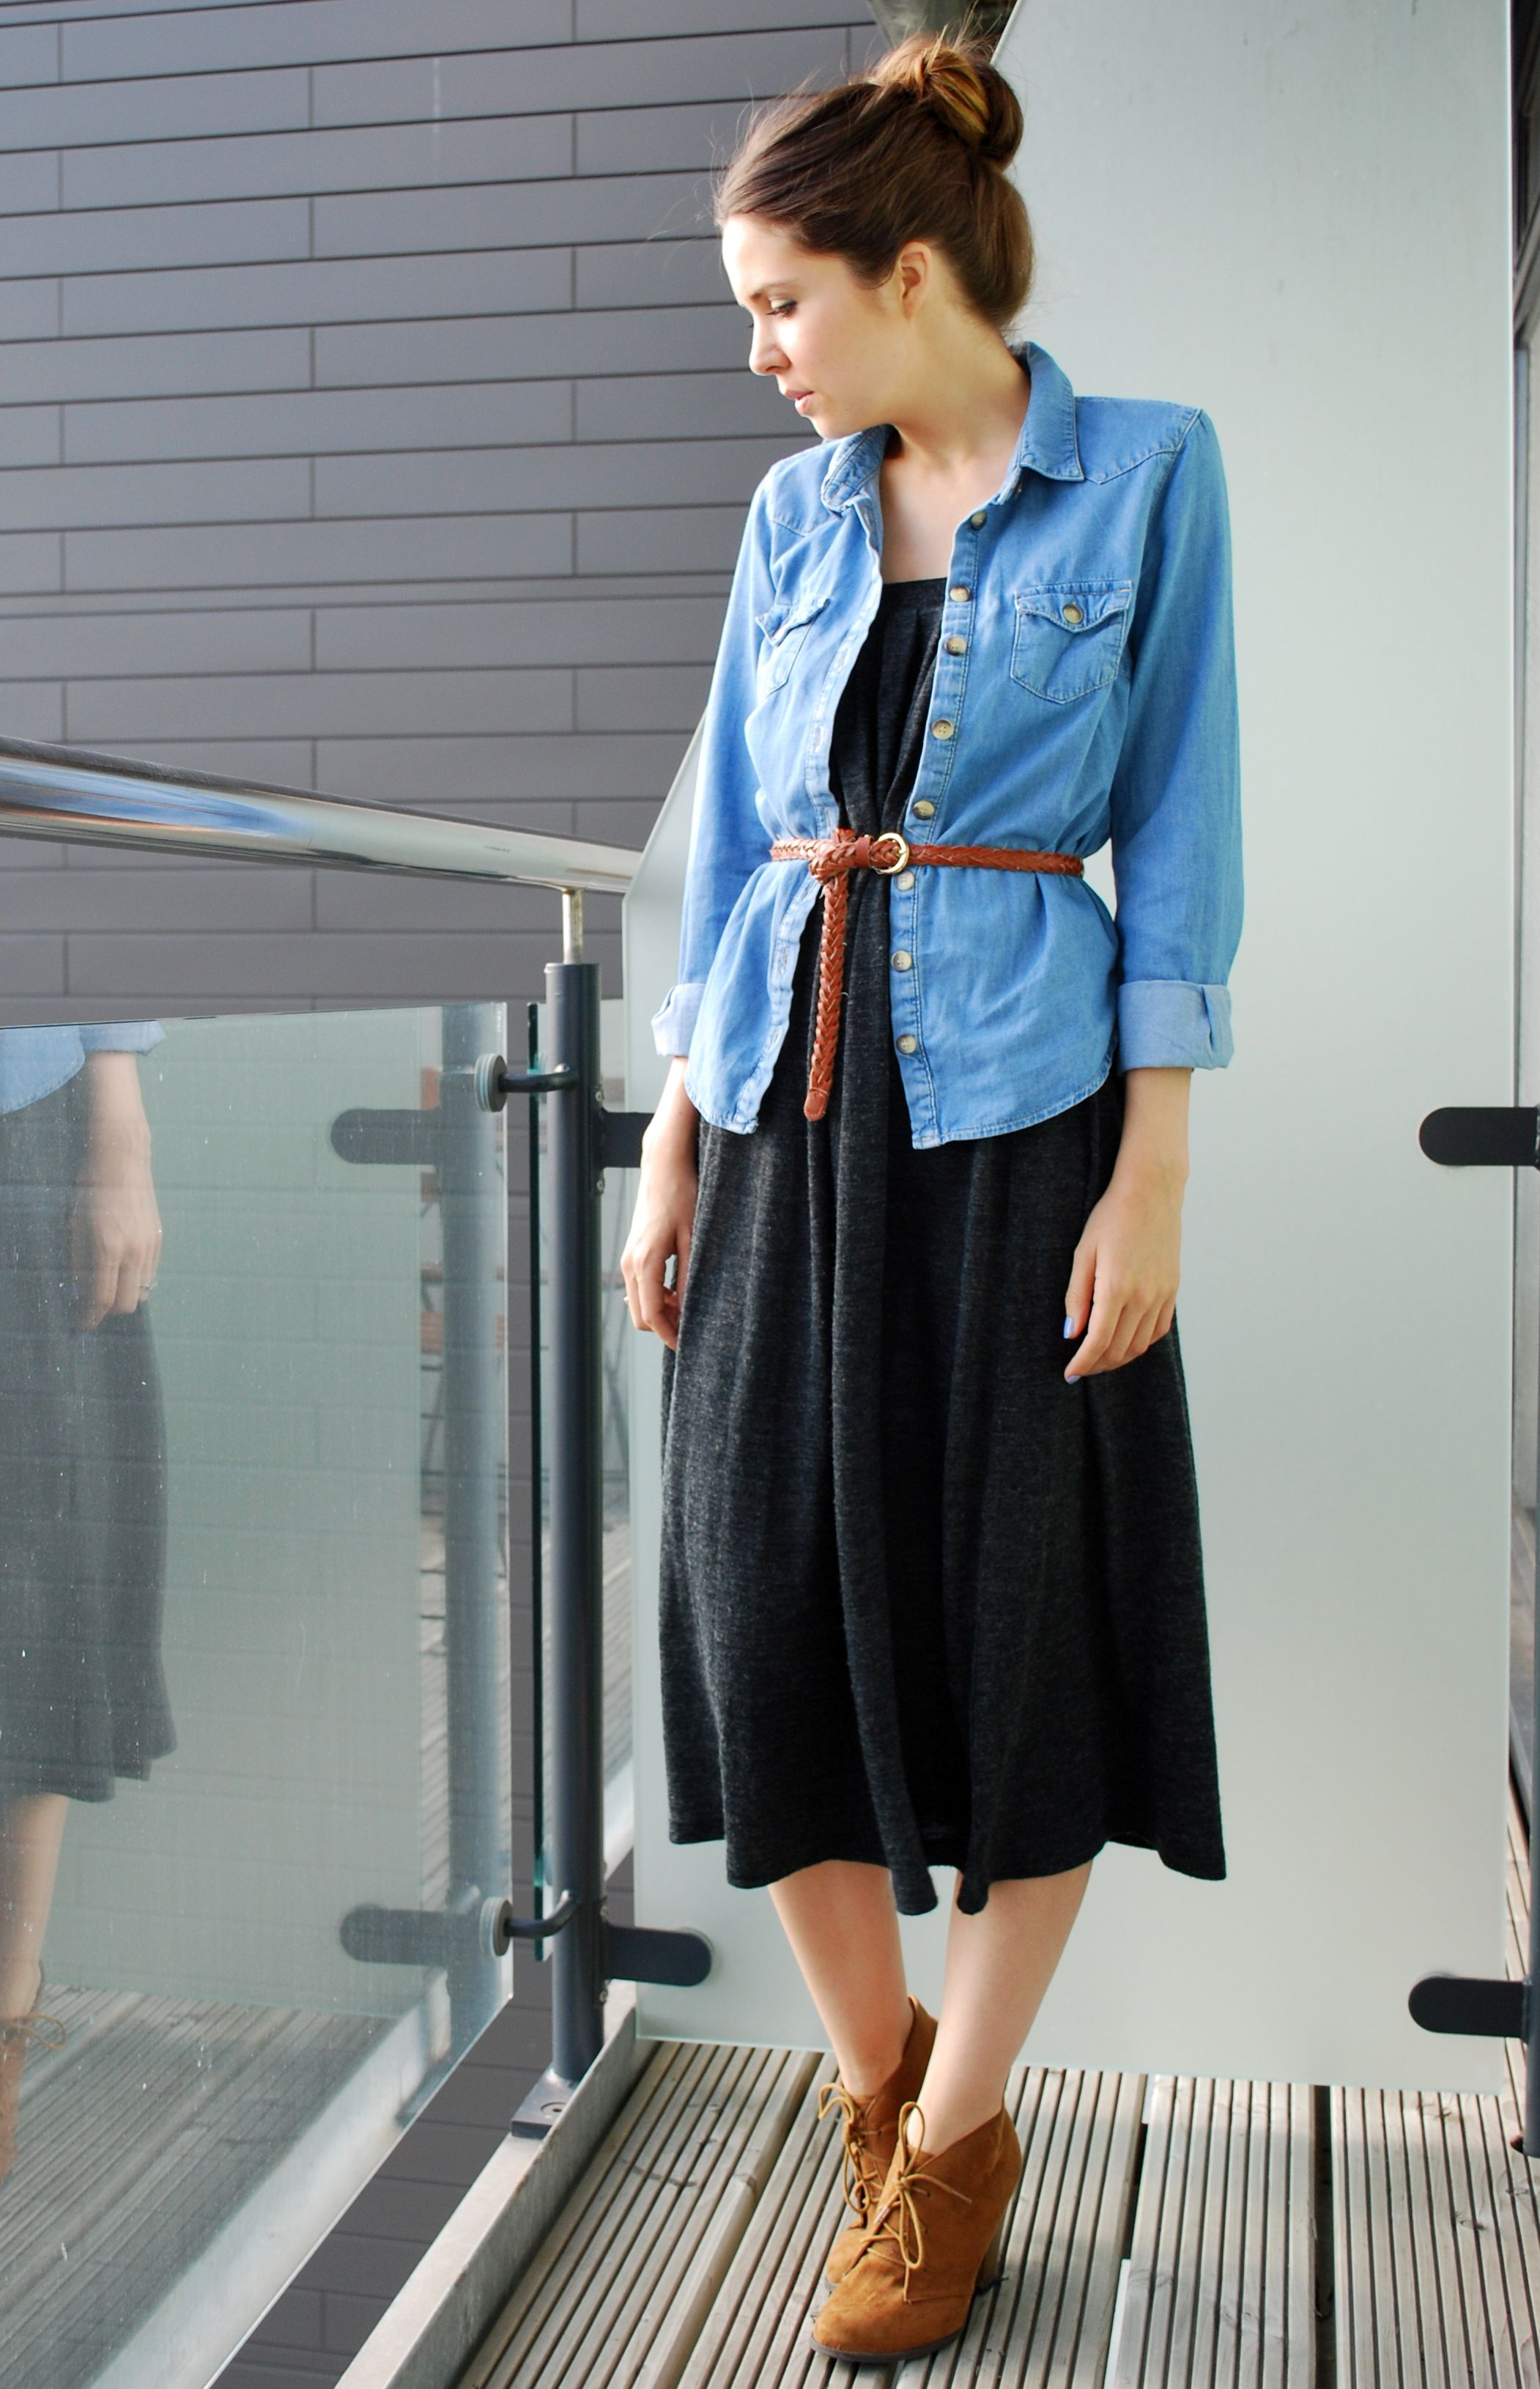 maxi skirt worn as dress denim and ankle boots have